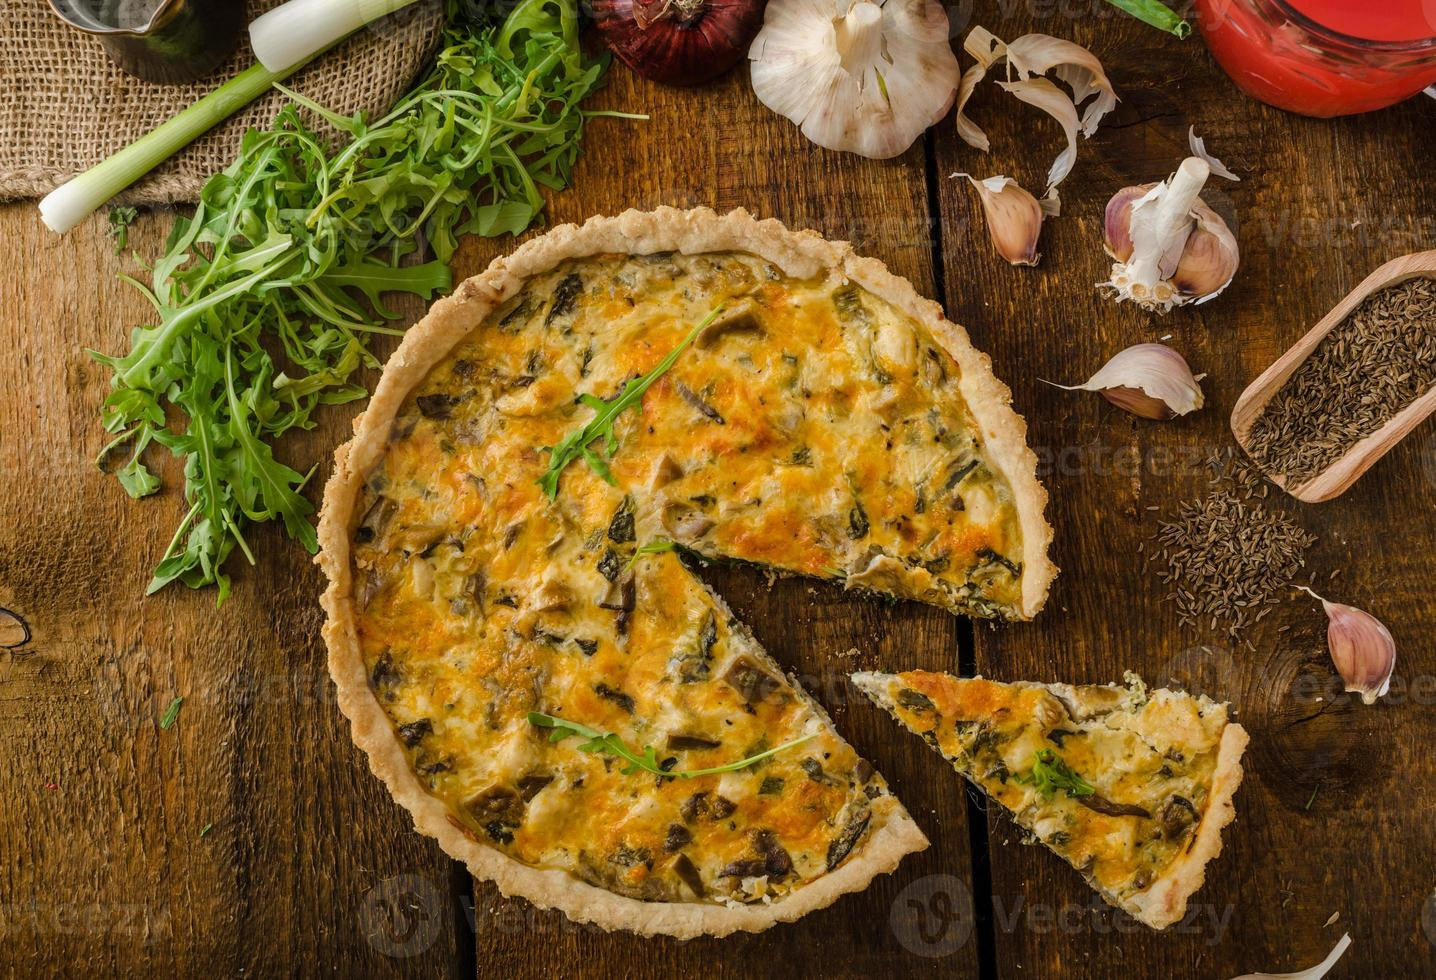 Cheese Quiche with chicken, arugula and mushrooms photo